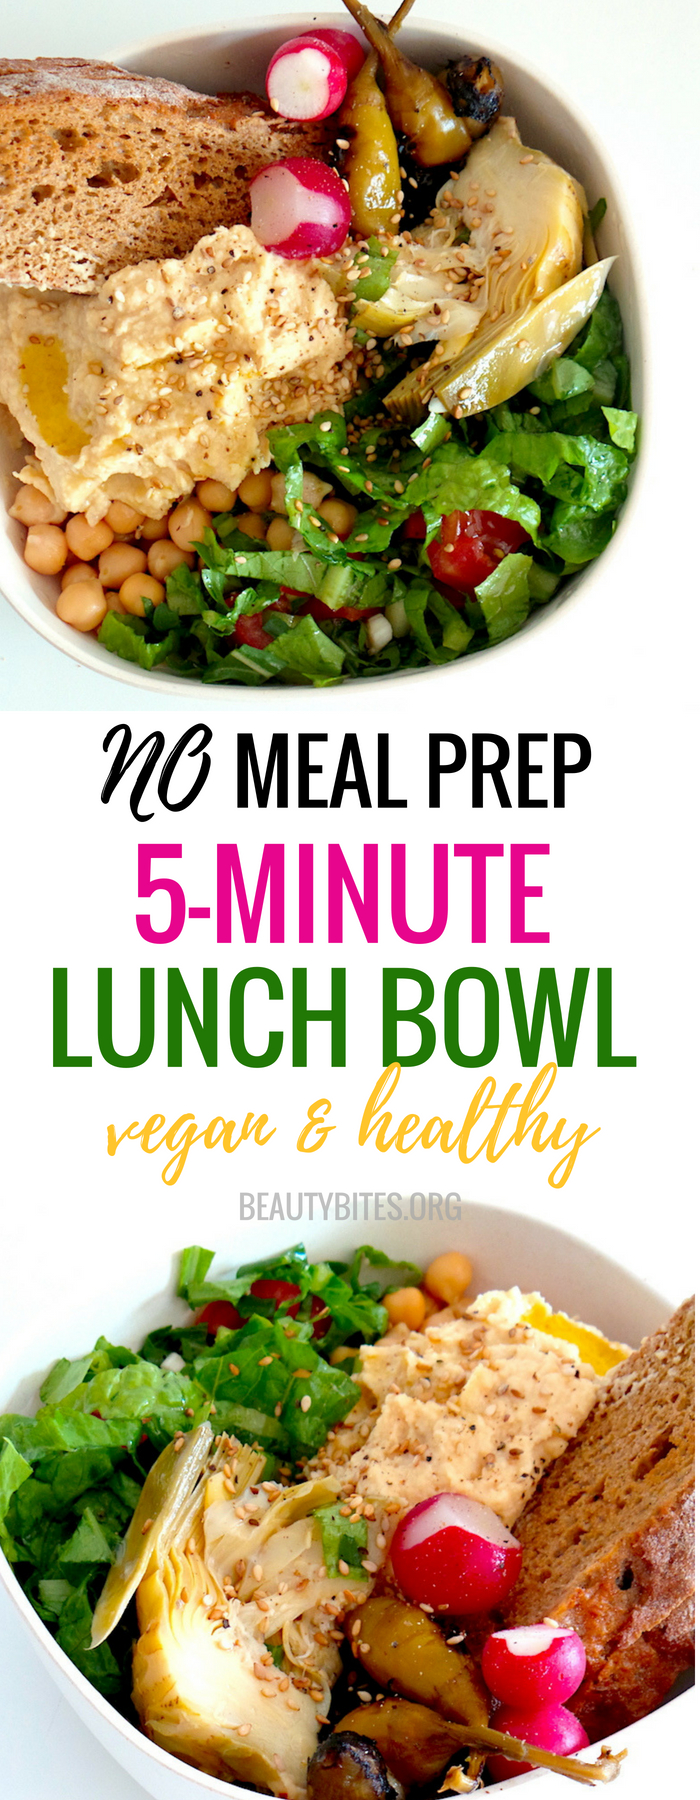 Make this vegan lunch bowl in less than 10 minutes! This is an easy healthy lunch recipe to help you lose weight, and stay on track with your diet even if you haven't meal prepped. Other than that, if you don't have the 10 min during the week, you can easily meal prep this recipe for the week ahead! | Healthy meal prep lunch recipe | www.beautybites.org